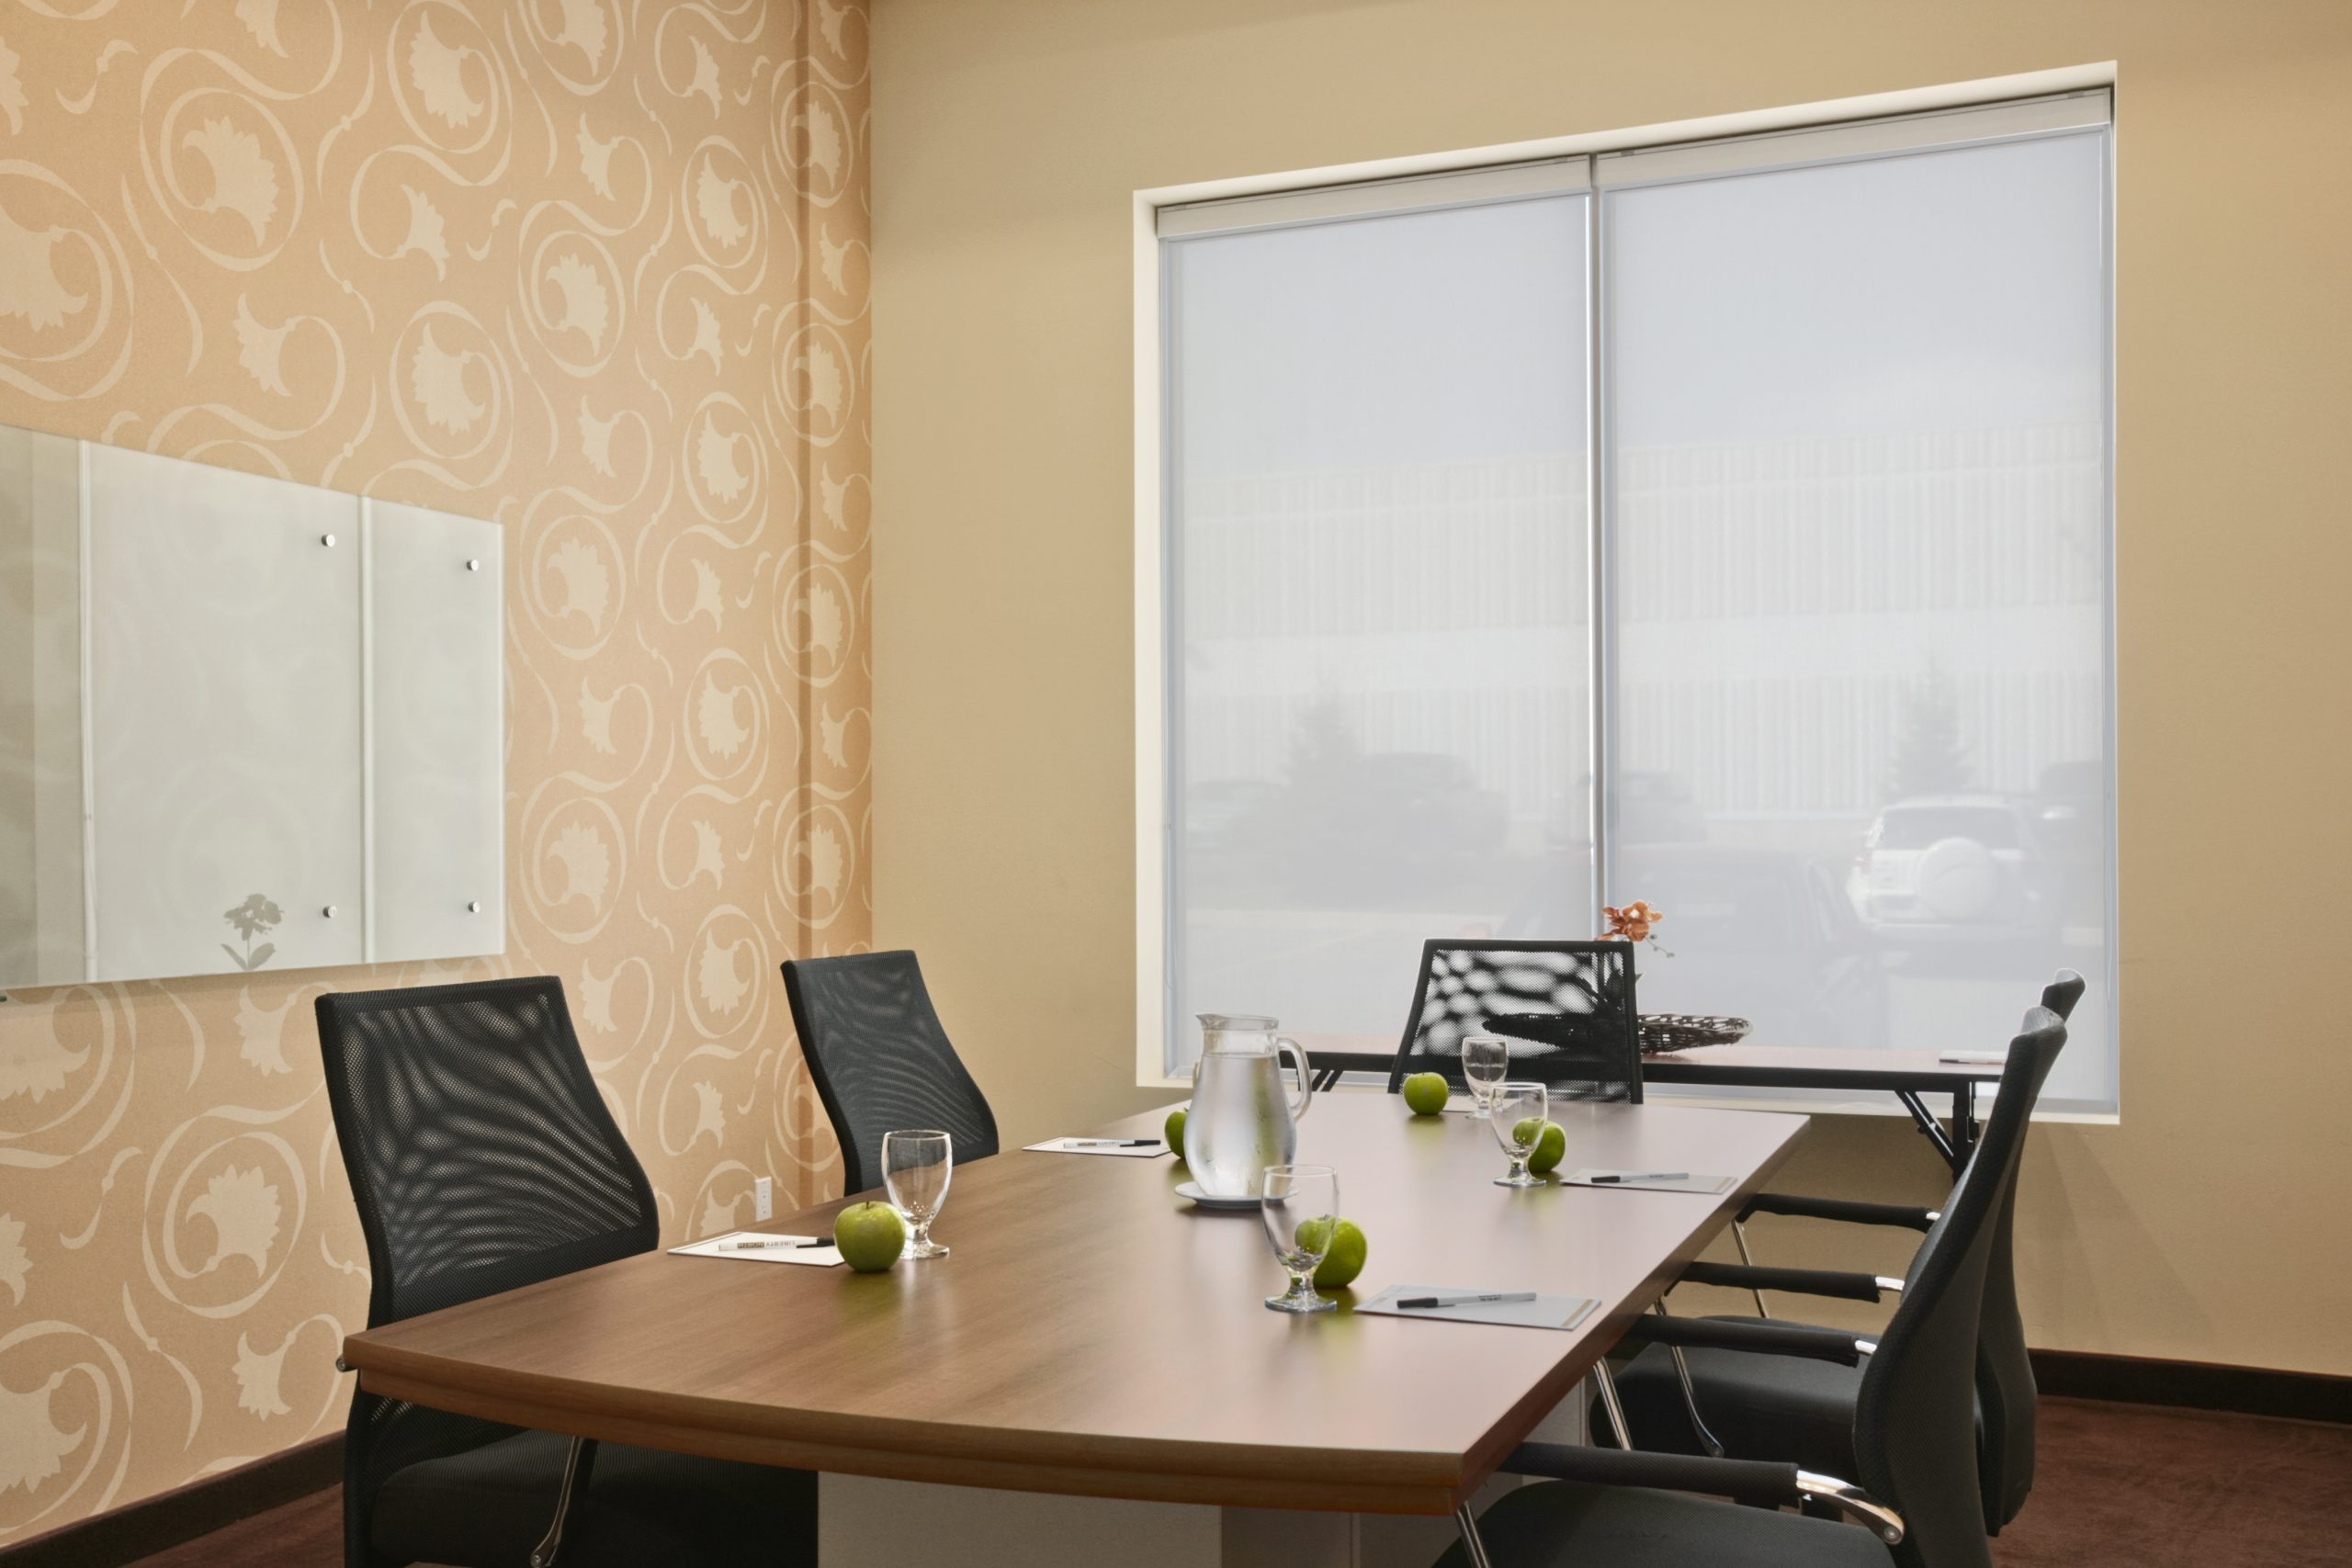 Perfect location for small business virtual events and meetings